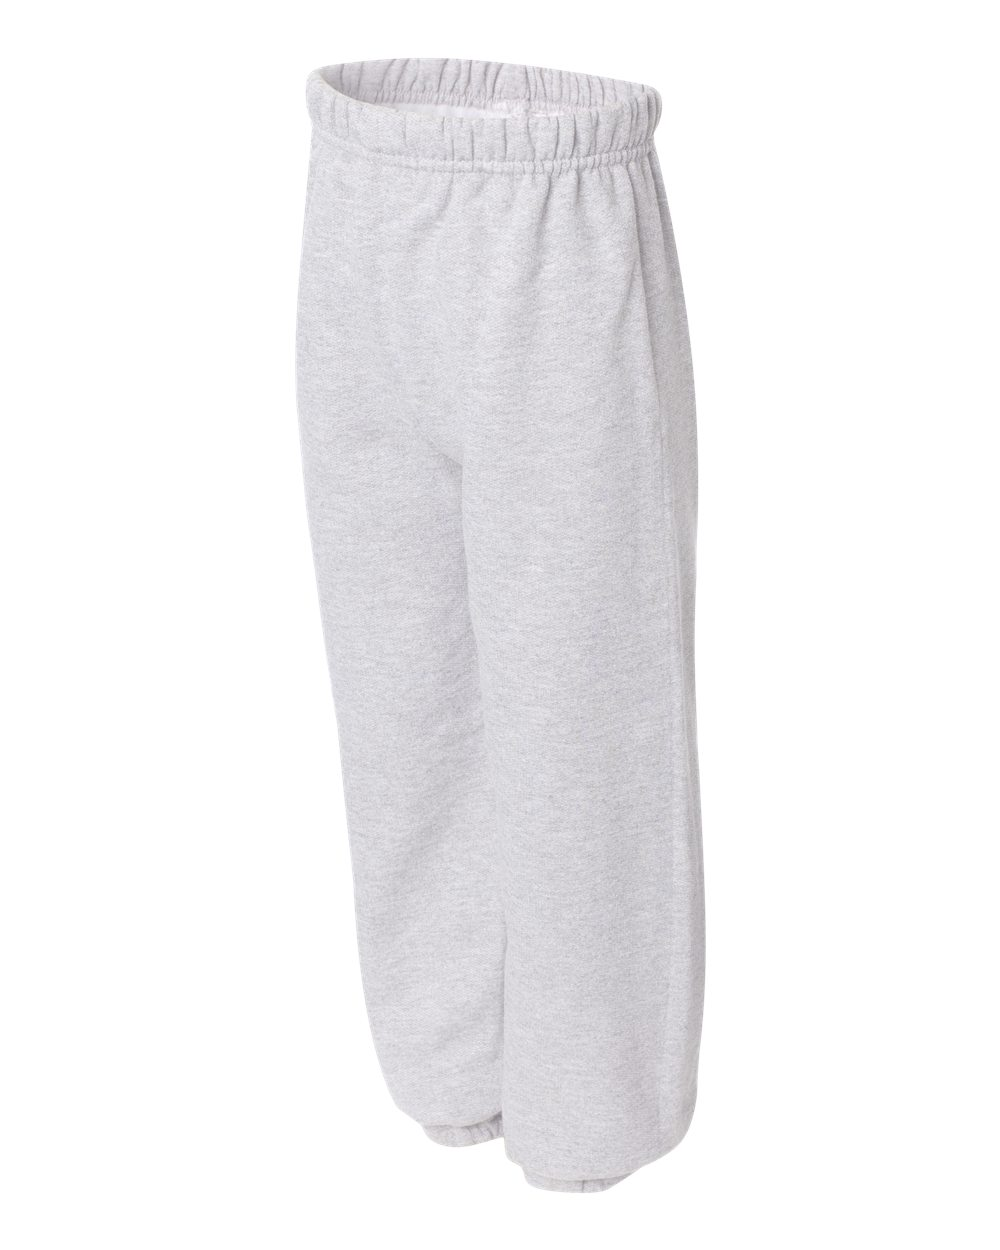 JERZEES 973BR - NuBlend Youth Sweatpants